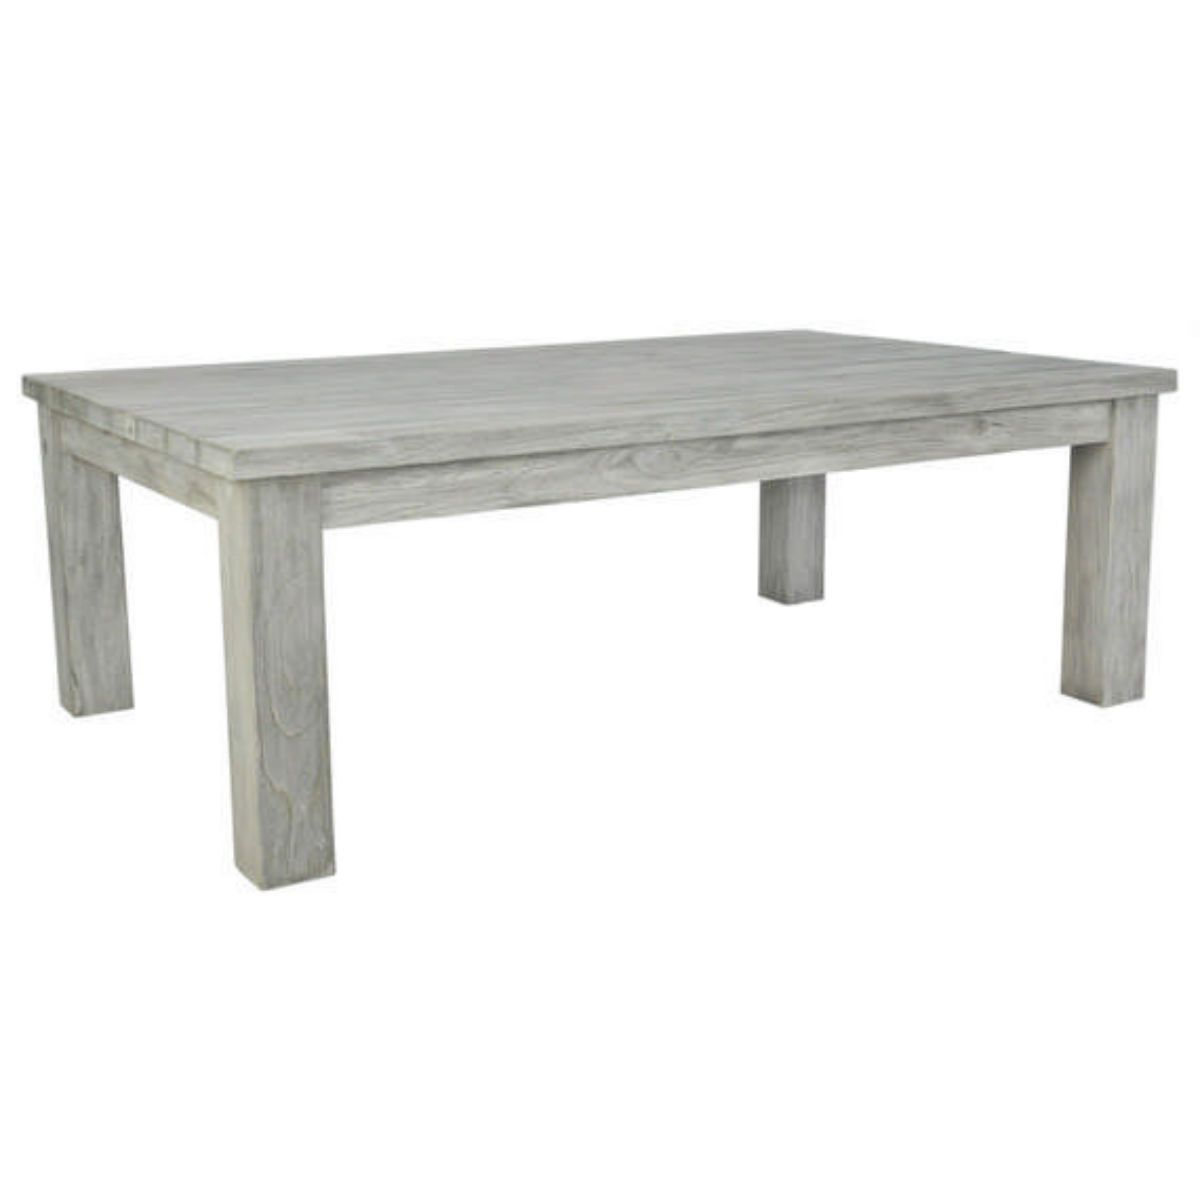 Superior Valhalla 73 Or 96 Rectangular Dining Table Grey Wash | Coastal Outdoor  Furniture | Pinterest | Grey Wash, Coastal And Coastal Style